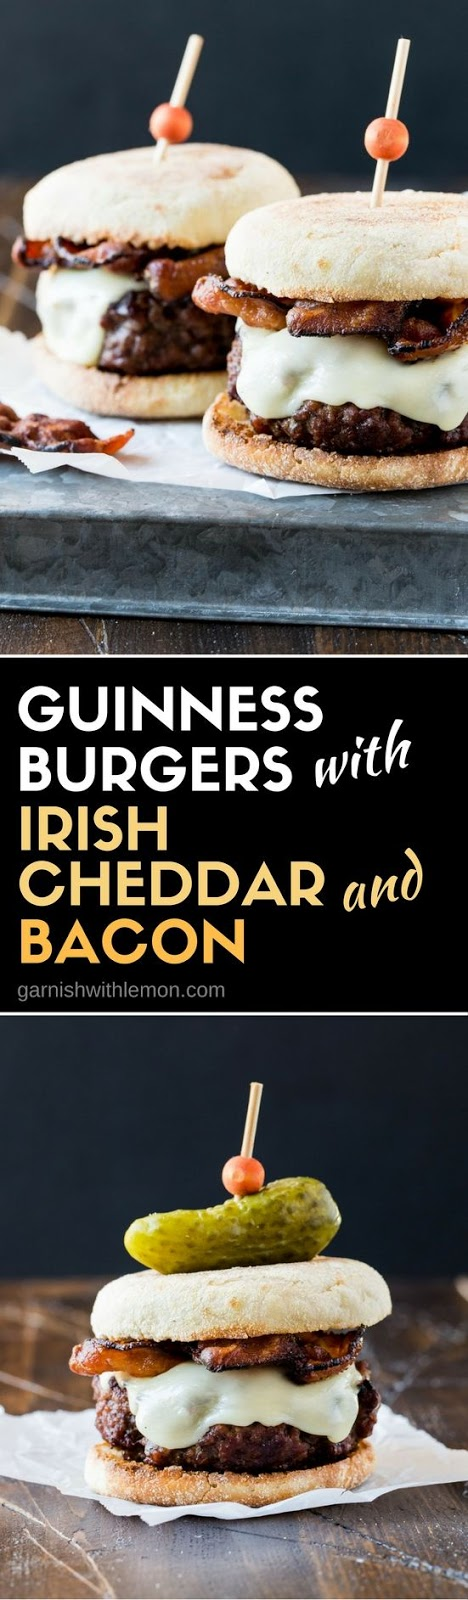 GUINNESS BURGER WITH IRISH CHEDDAR AND BACON